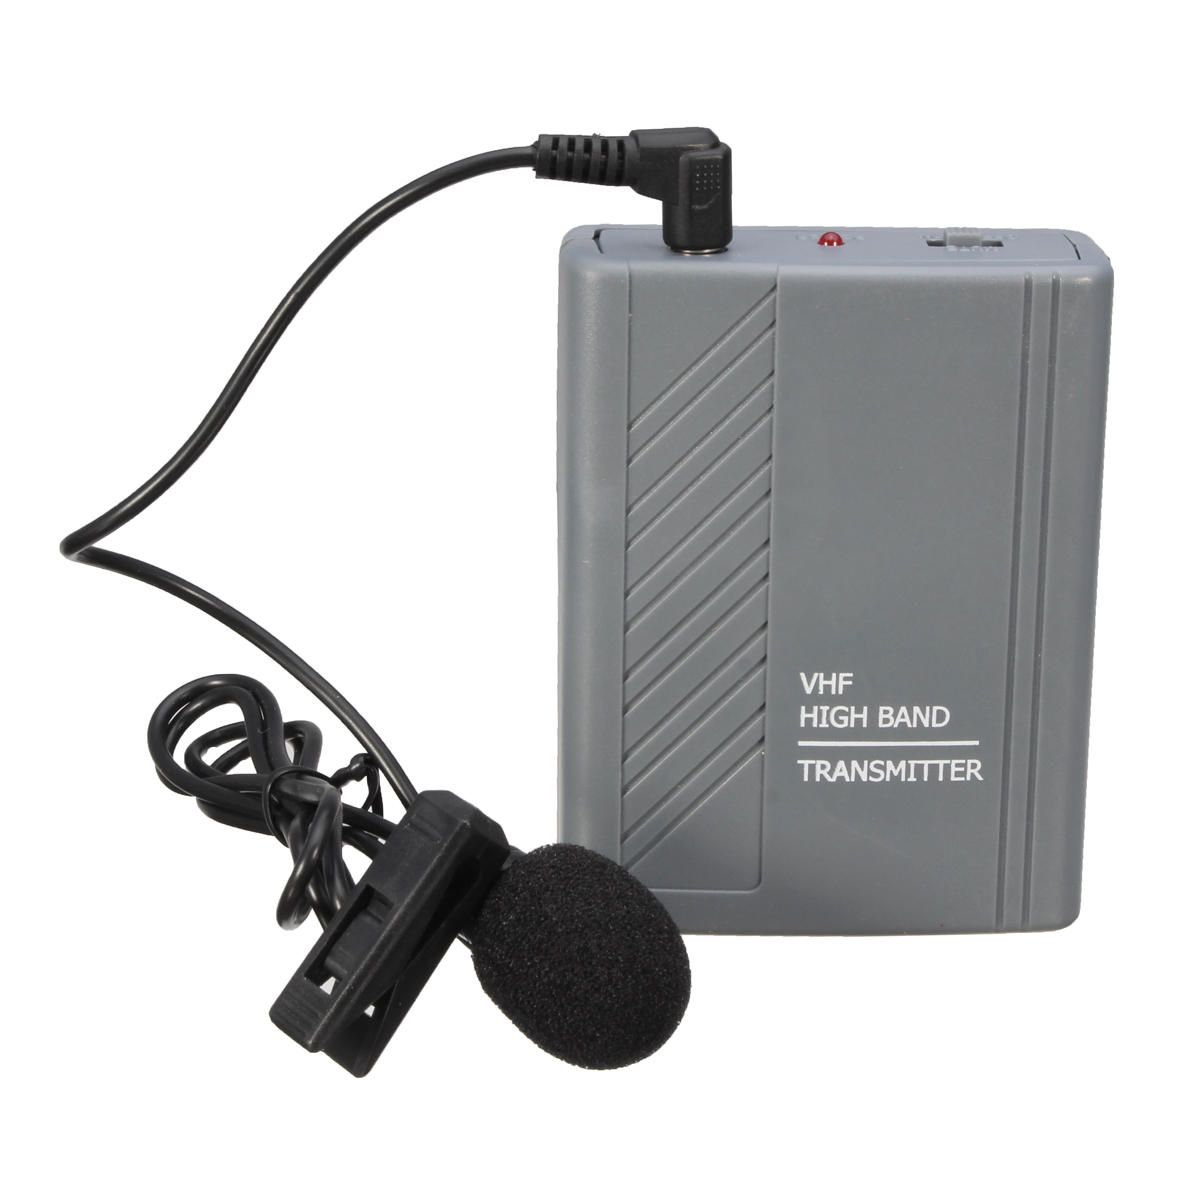 KQF US$27.40 Wireless Meeting Teaching Clip-on Headset Lavalier Microphone MIC Audio Loudspeaker Transmitter Receiver